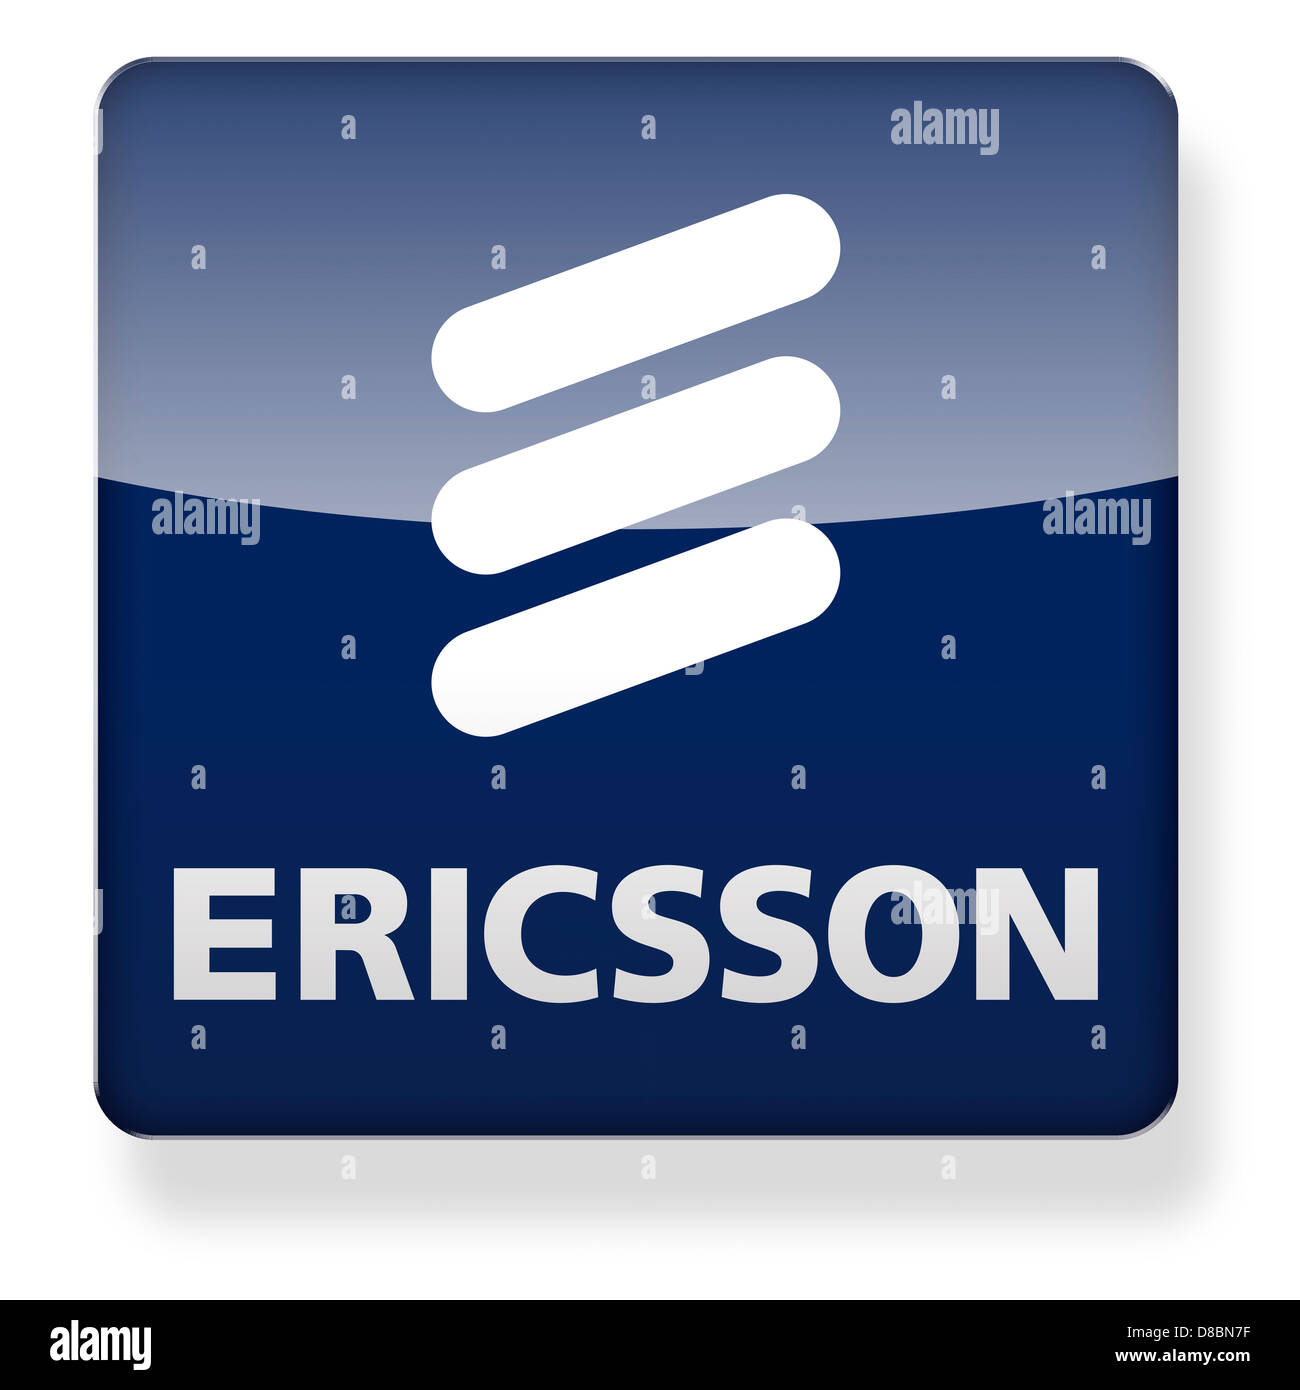 Ericsson Logo As An App Icon. Clipping Path Included Stock